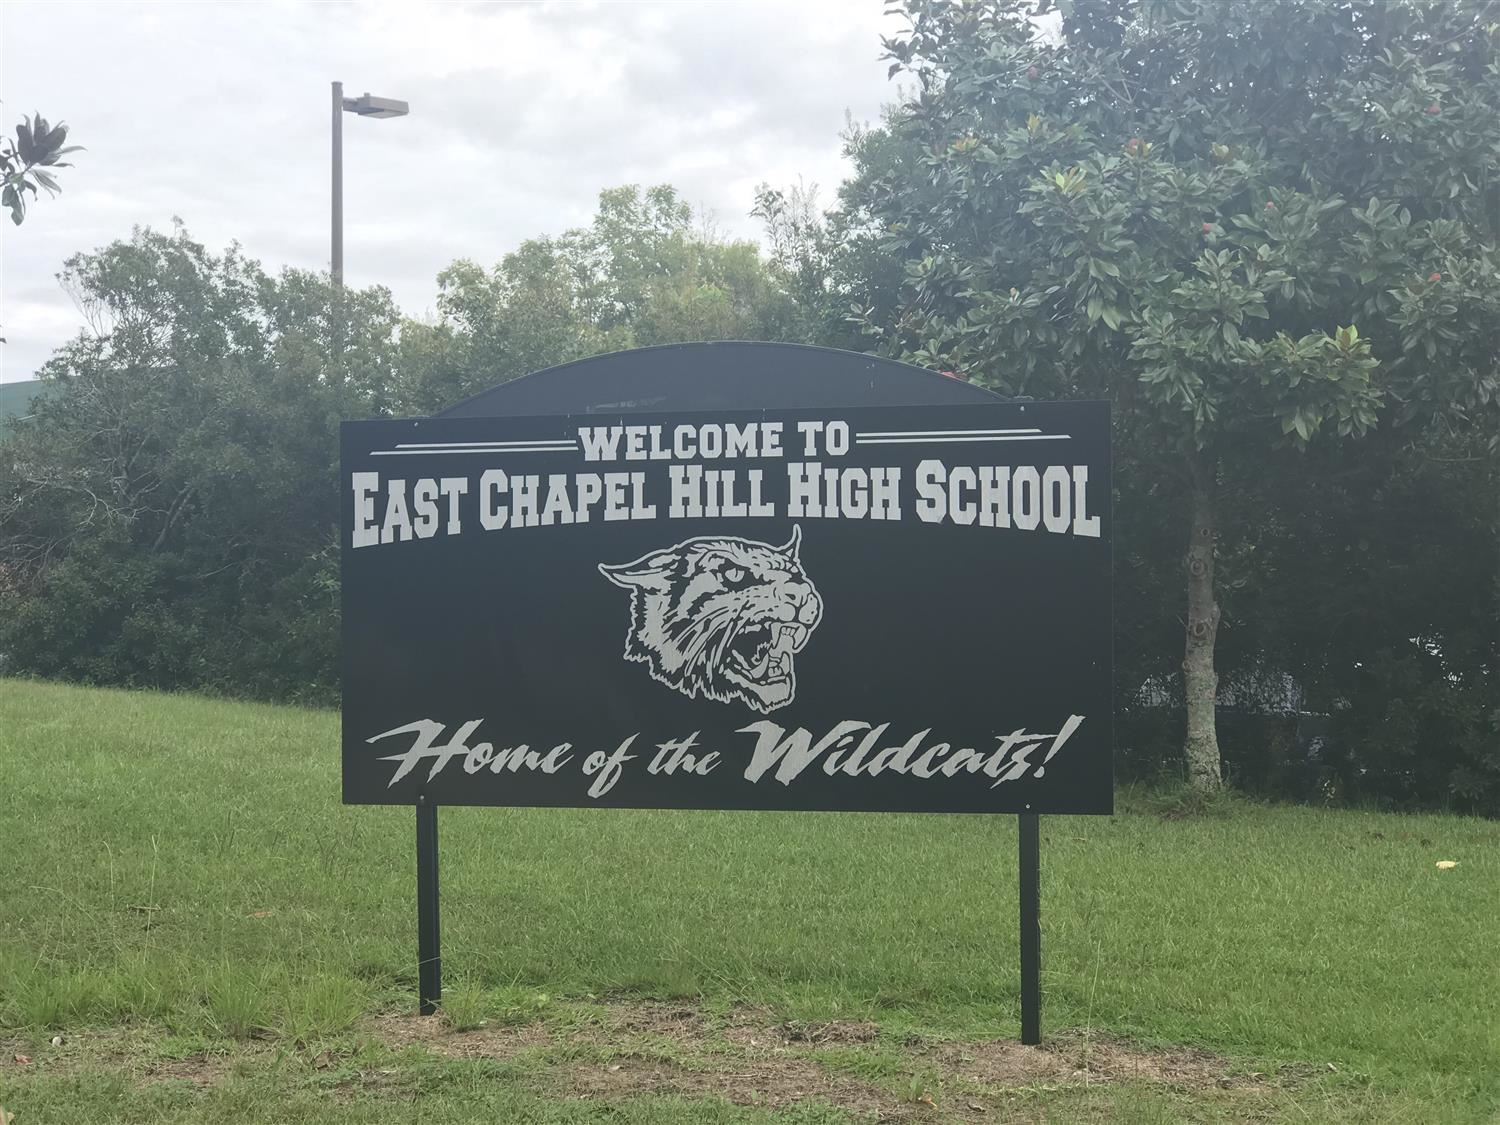 East Chapel Hill High School / Homepage